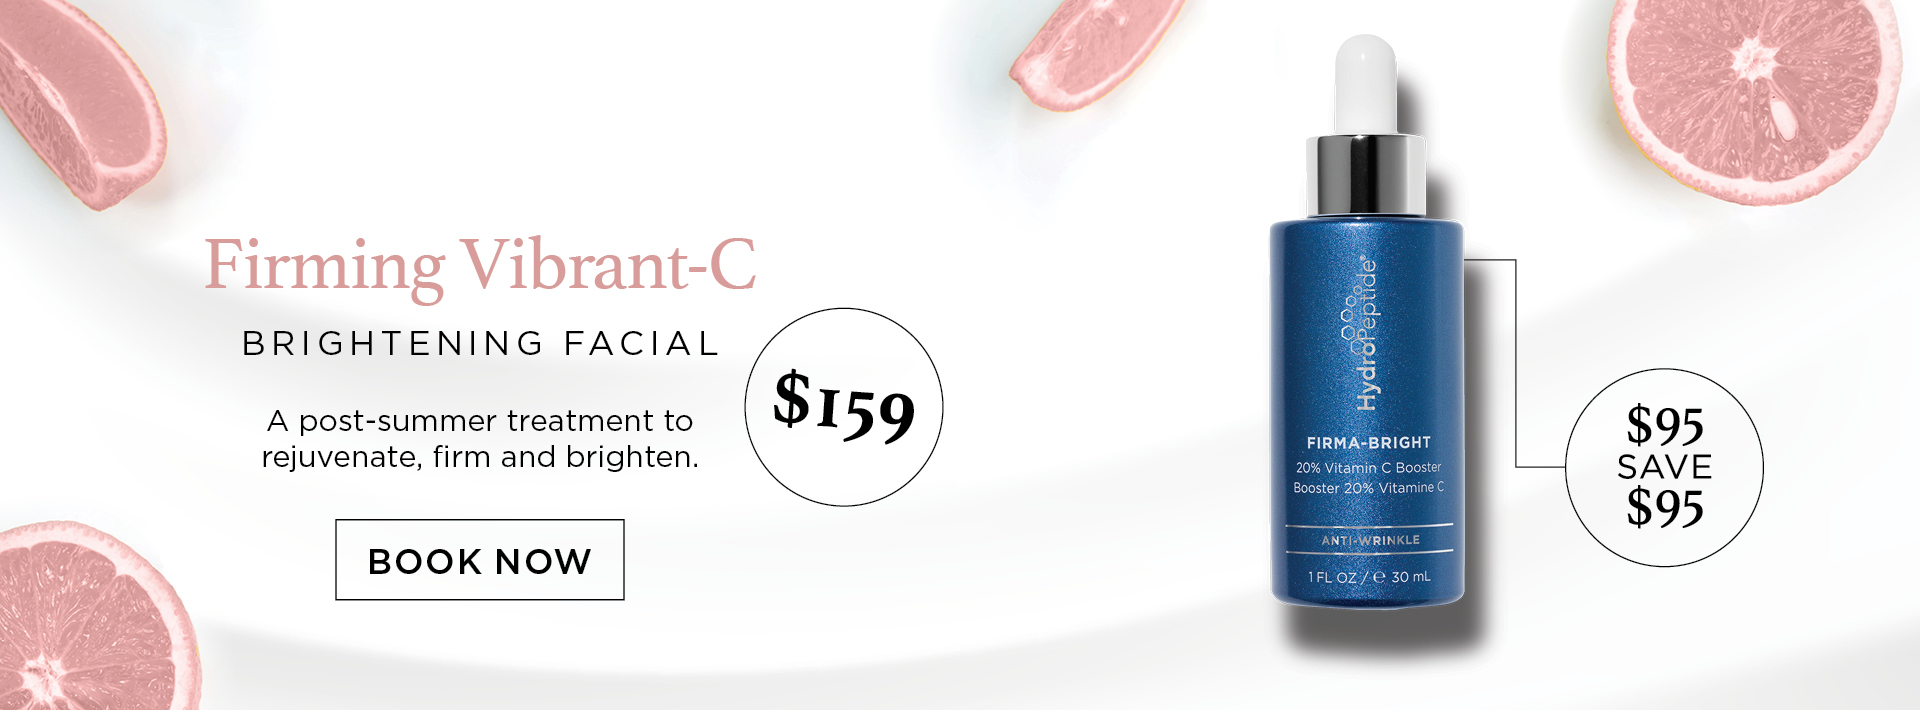 Angel Touch Firming Vibrant-C Brightening Facial